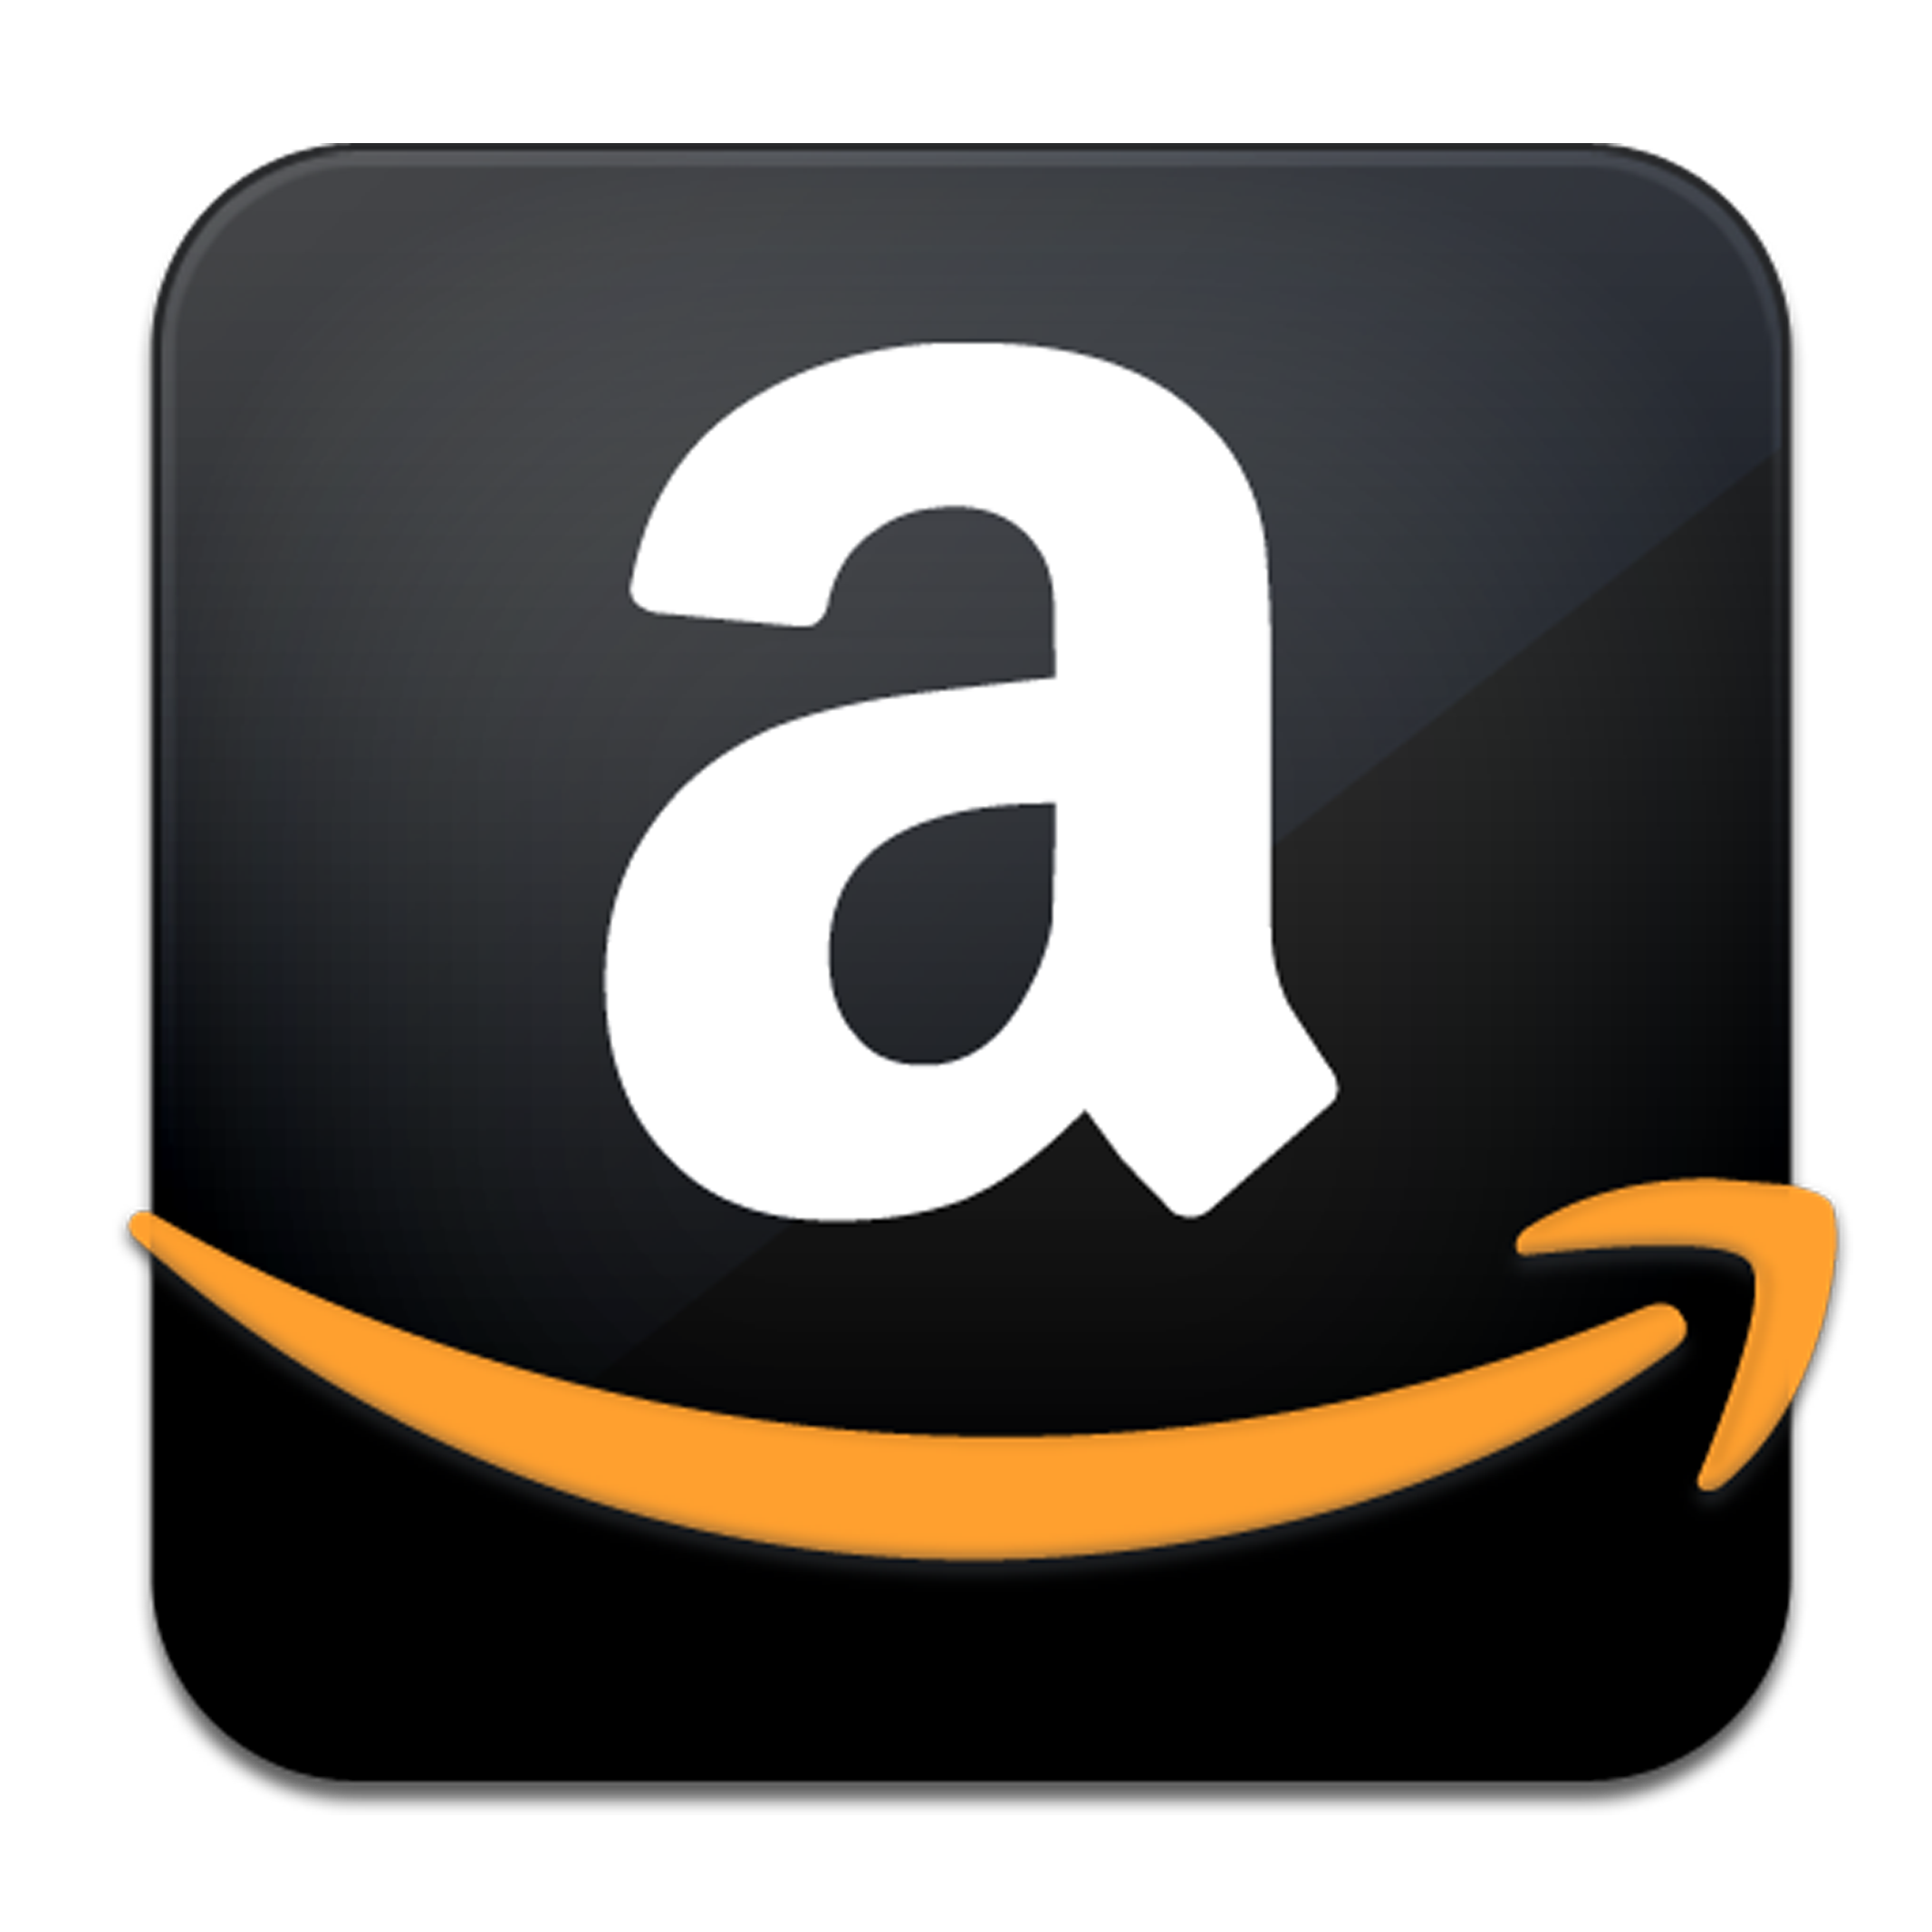 amazon logo preorder